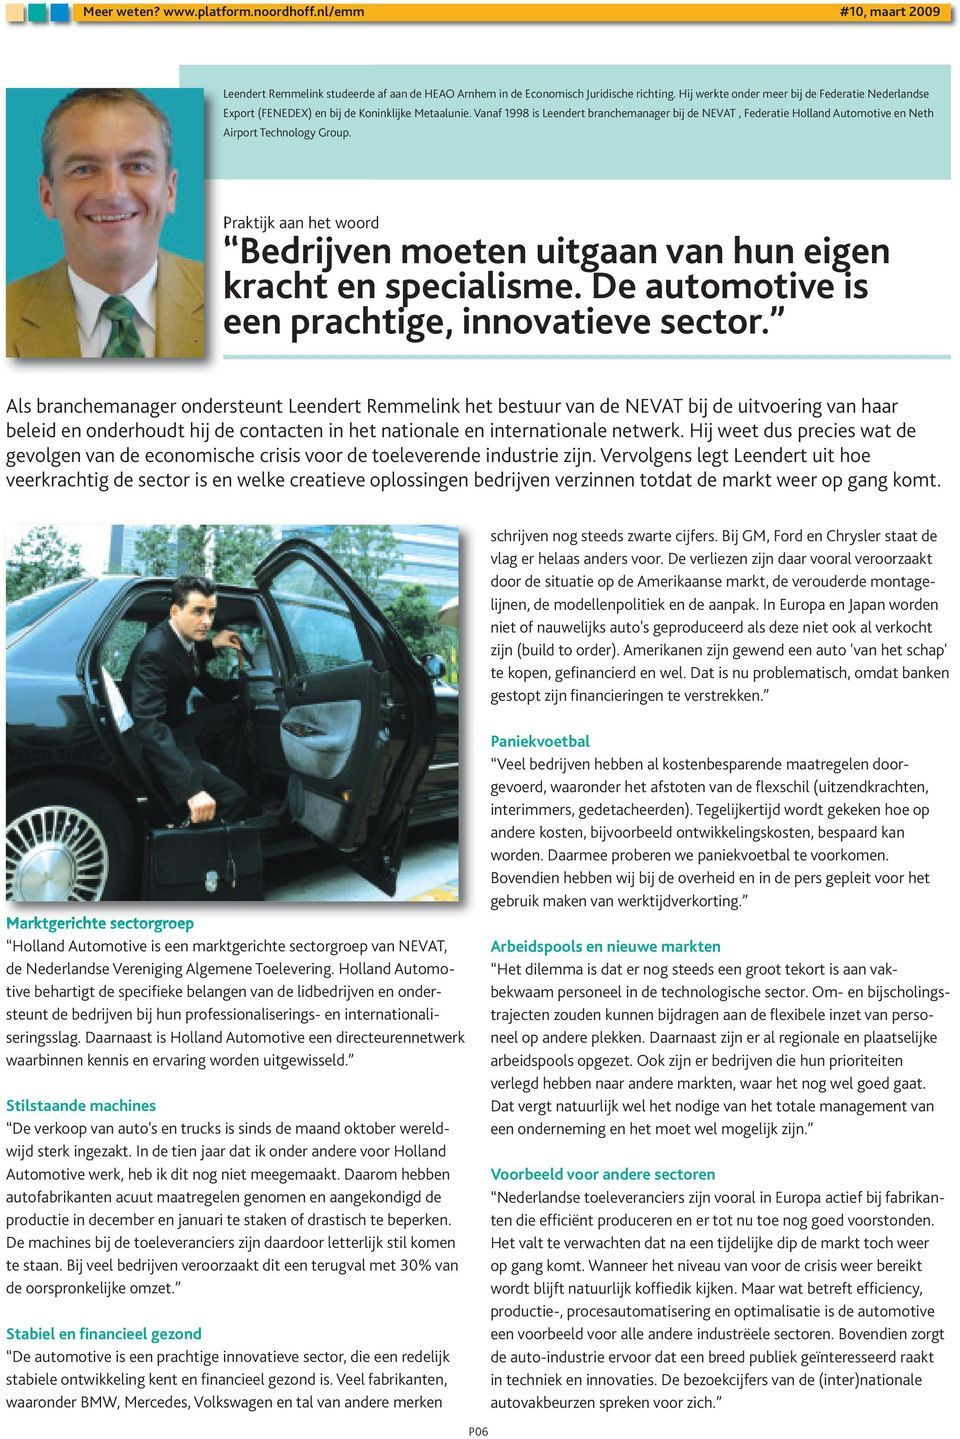 De automotive is een prachtige, innovatieve sector.